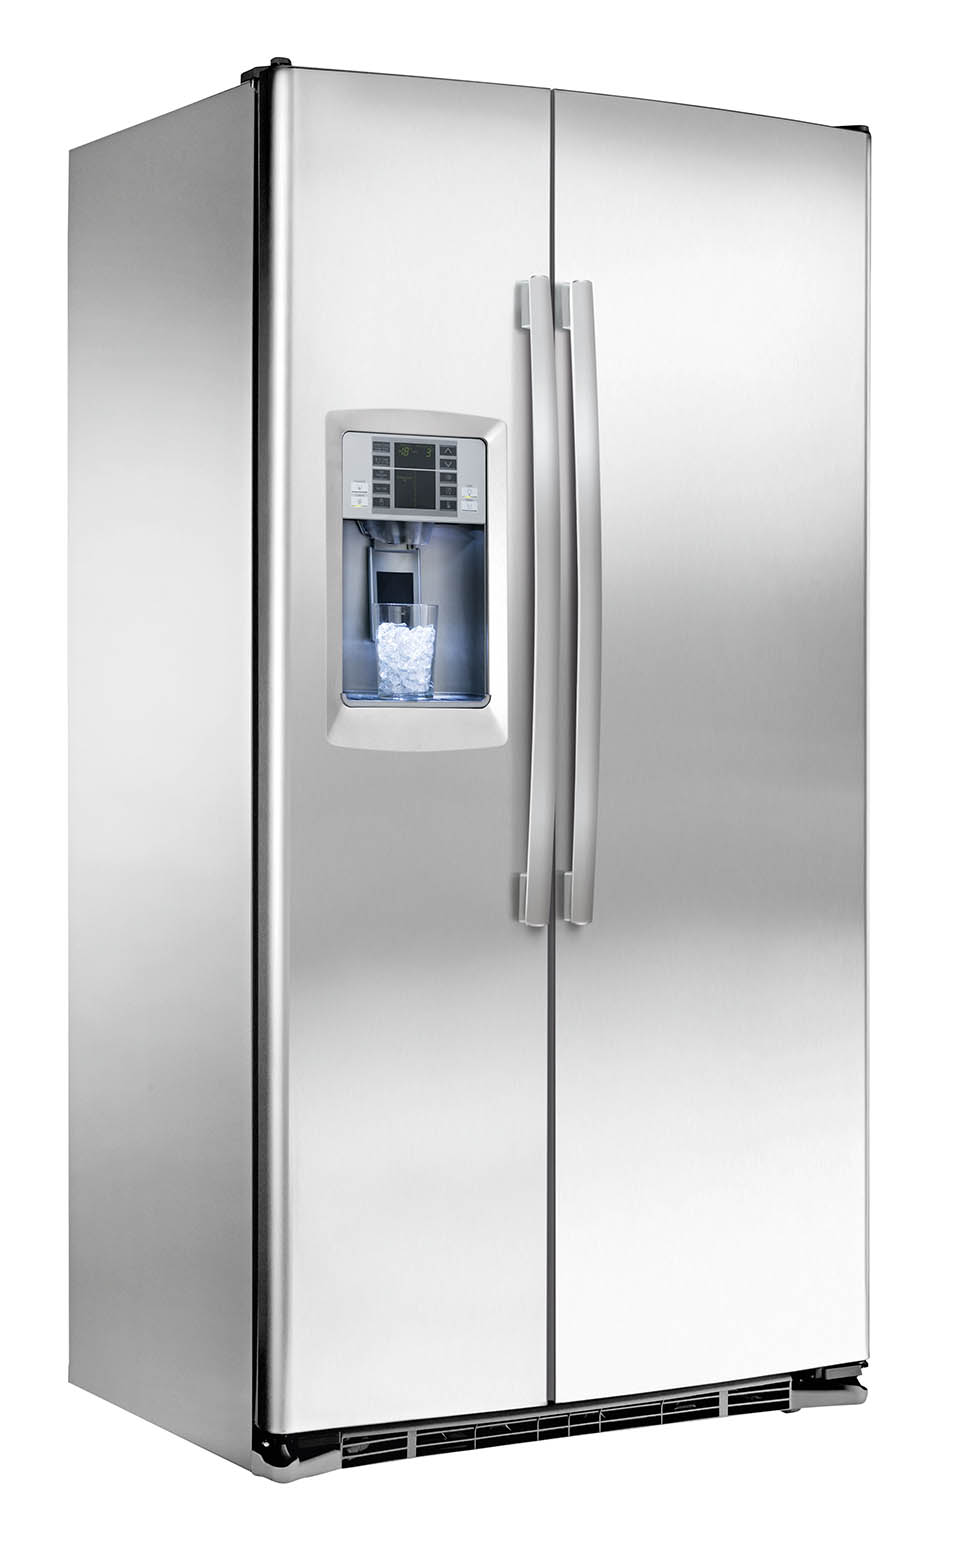 R frig rateur am ricain side by side general electric pas cher for Refrigerateur americain miroir